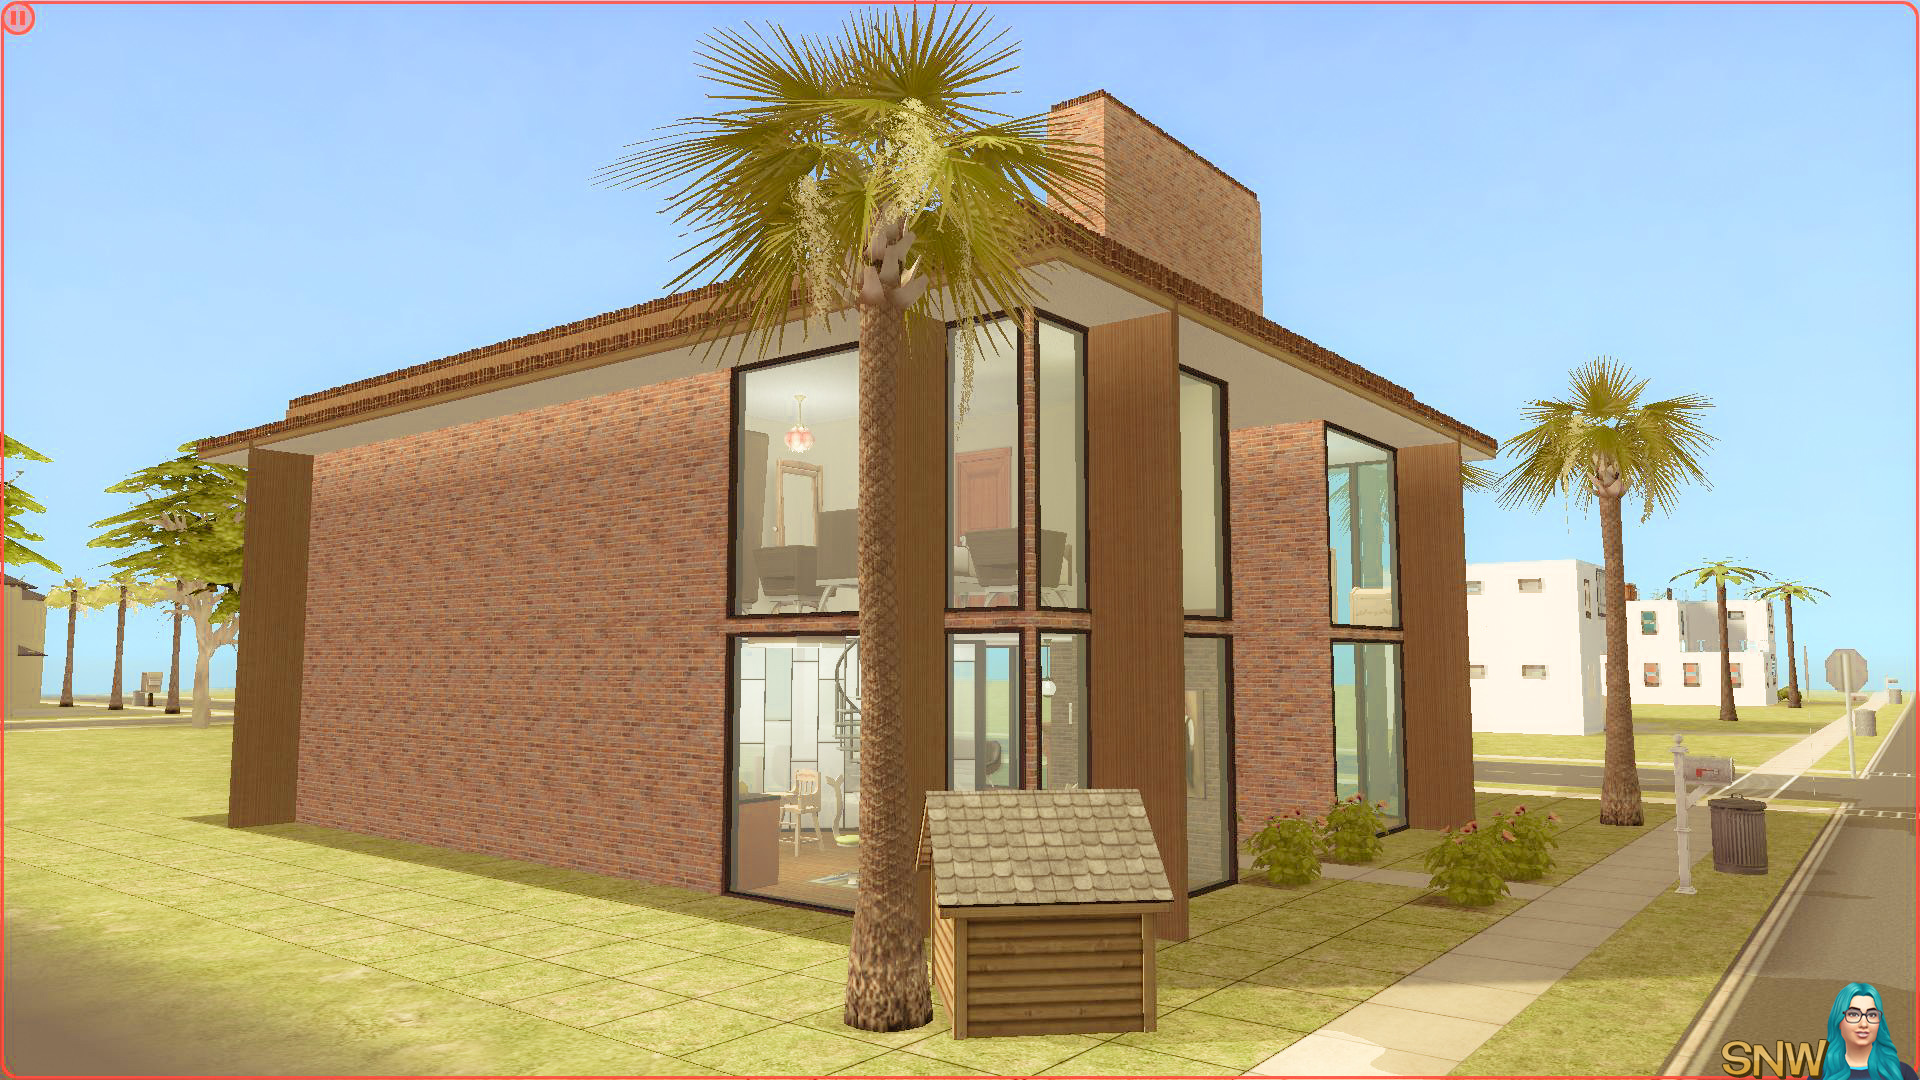 Mid century modern pleasantview snw for Modern house ep 9